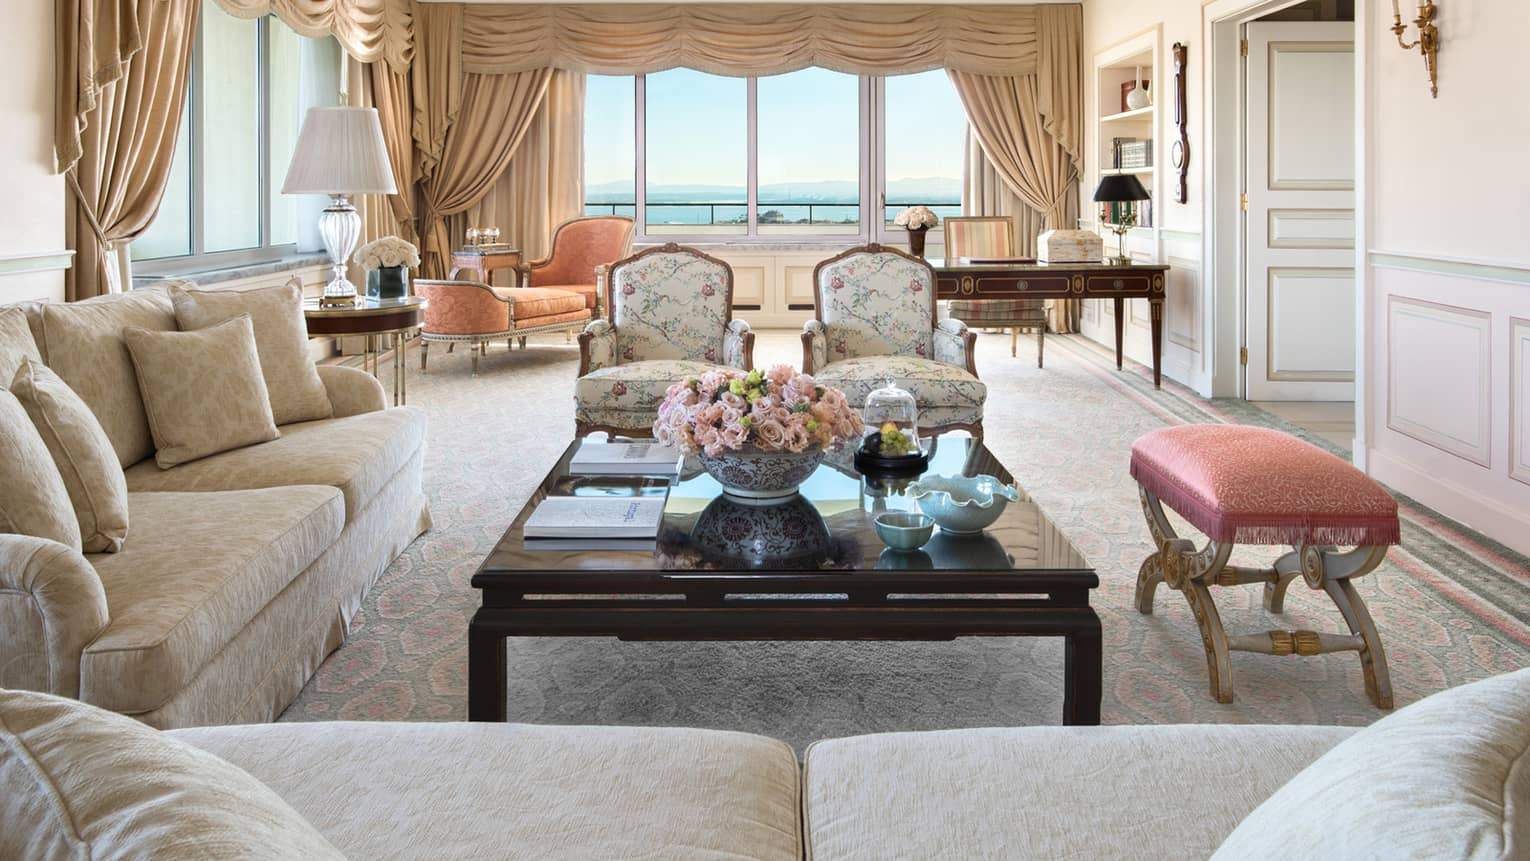 Side view of Presidential Suite seating area, coffee table, bench, two wing chairs, orange chaise, tall windows with views